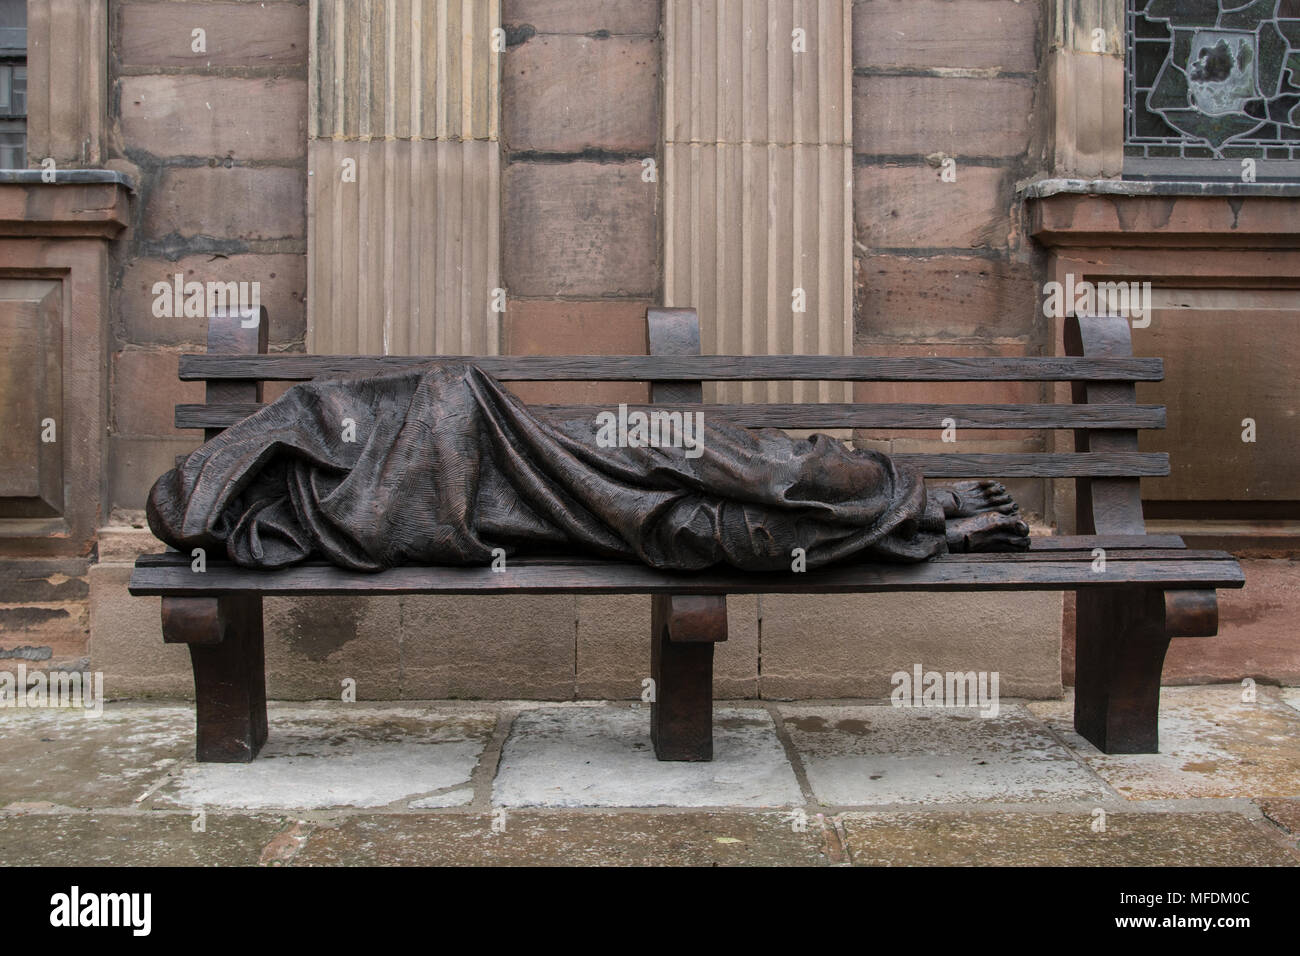 St. Annes Sq, Manchester, UK. 25th. April 2018: Homeless Jesus sculpture in St. Annes Square Manchester - a social comment on the homeless problem in the city. Homeless Jesus, also known as Jesus the Homeless, is the work of a Canadian sculptor and devout Catholic, Timothy Schmalz, whose original casting of Jesus on a park bench was installed in Toronto. Further casts have been made from the mould and have appeared in several cities around the world including the Papal Offices in Rome.. Credit: Dave Ellison/Alamy Live News Stock Photo